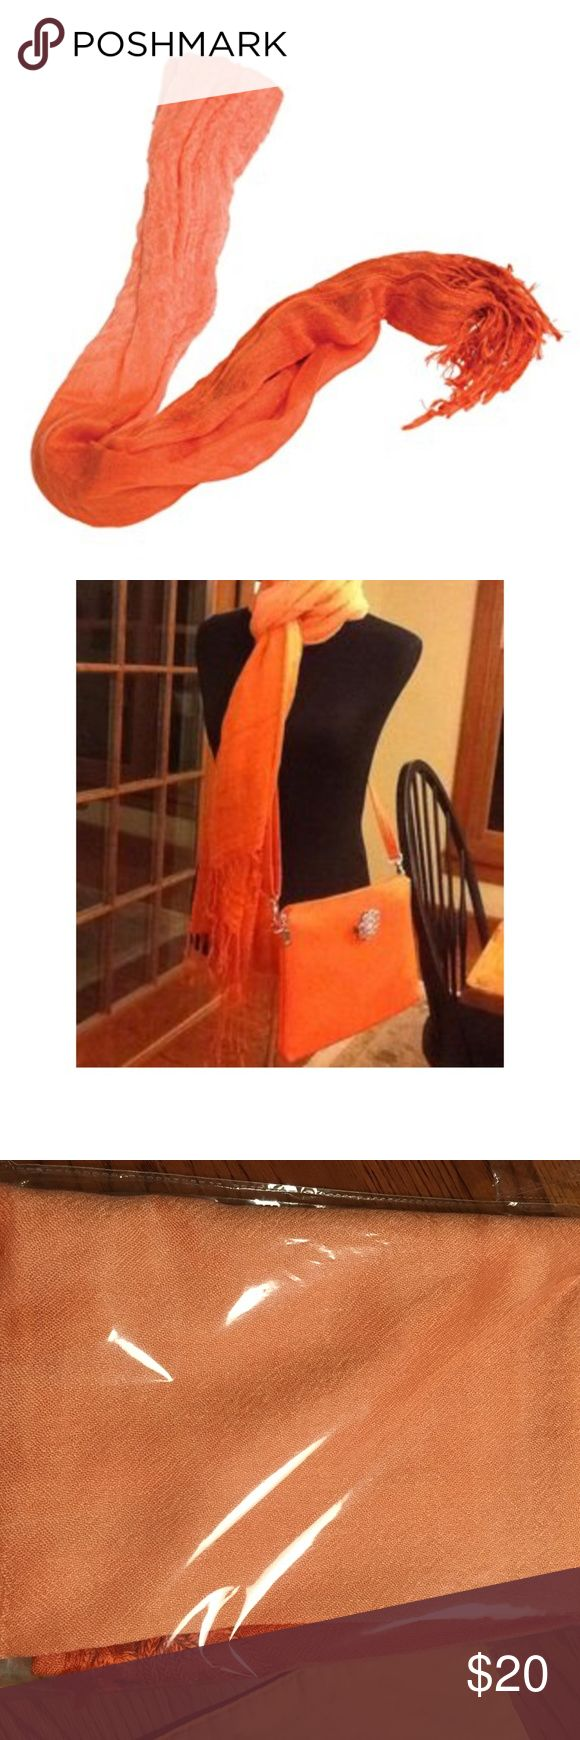 "Grace Adele Orange Ombre Scarf - NIB Wrap yourself up in chic, cozy style with this fringed ombre scarf by Grace Adele.  This is the final layer to your ensemble for warmth and style.  Smoke free home.  69"" long.  27 1/2"" wide.  3 1/2"" fringe.  All measurements are approximate. Grace Adele Accessories Scarves & Wraps"